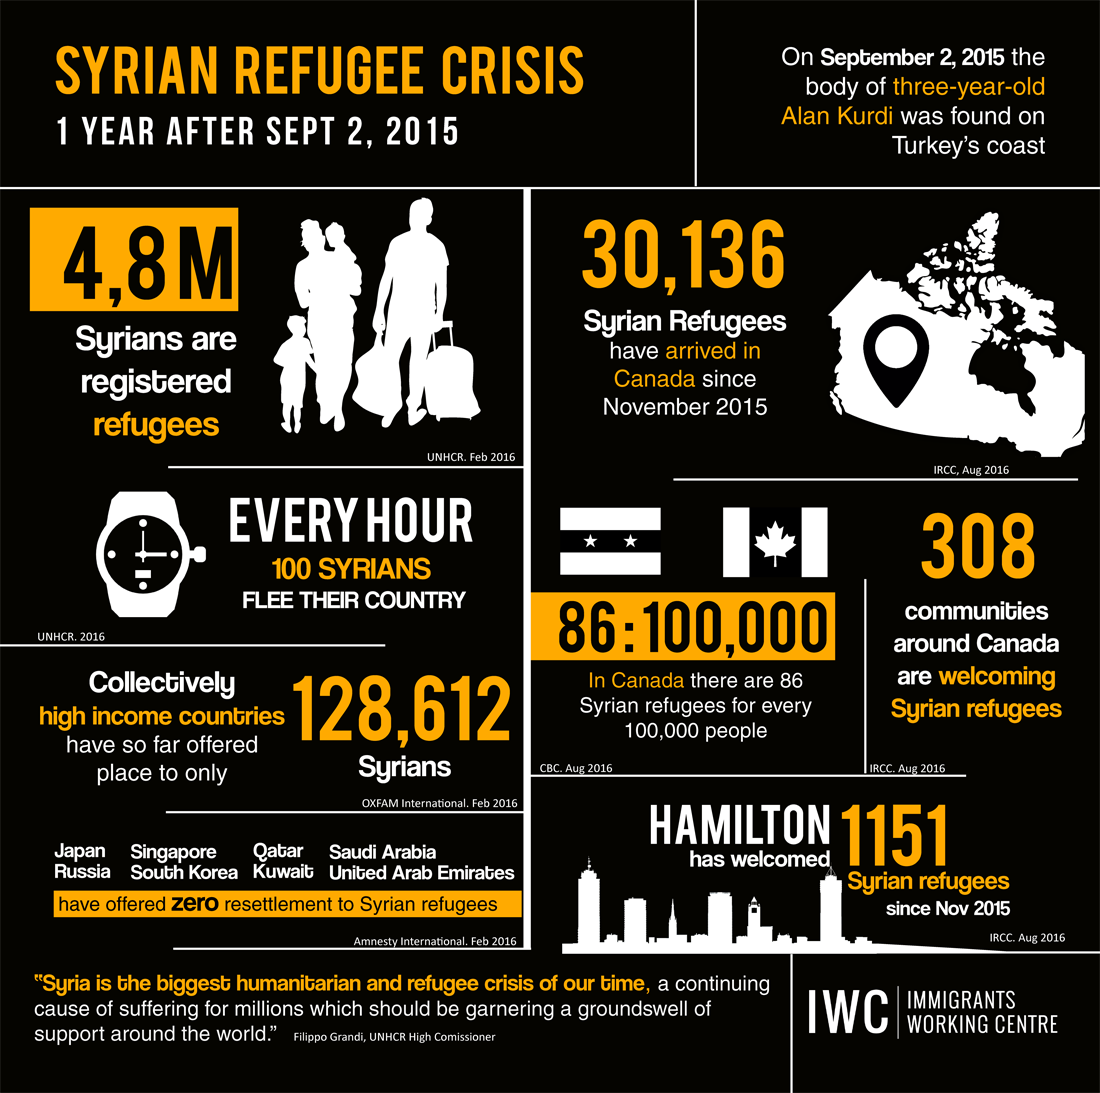 iwc-refugee-crisis-1-year-after-alan-kurdi